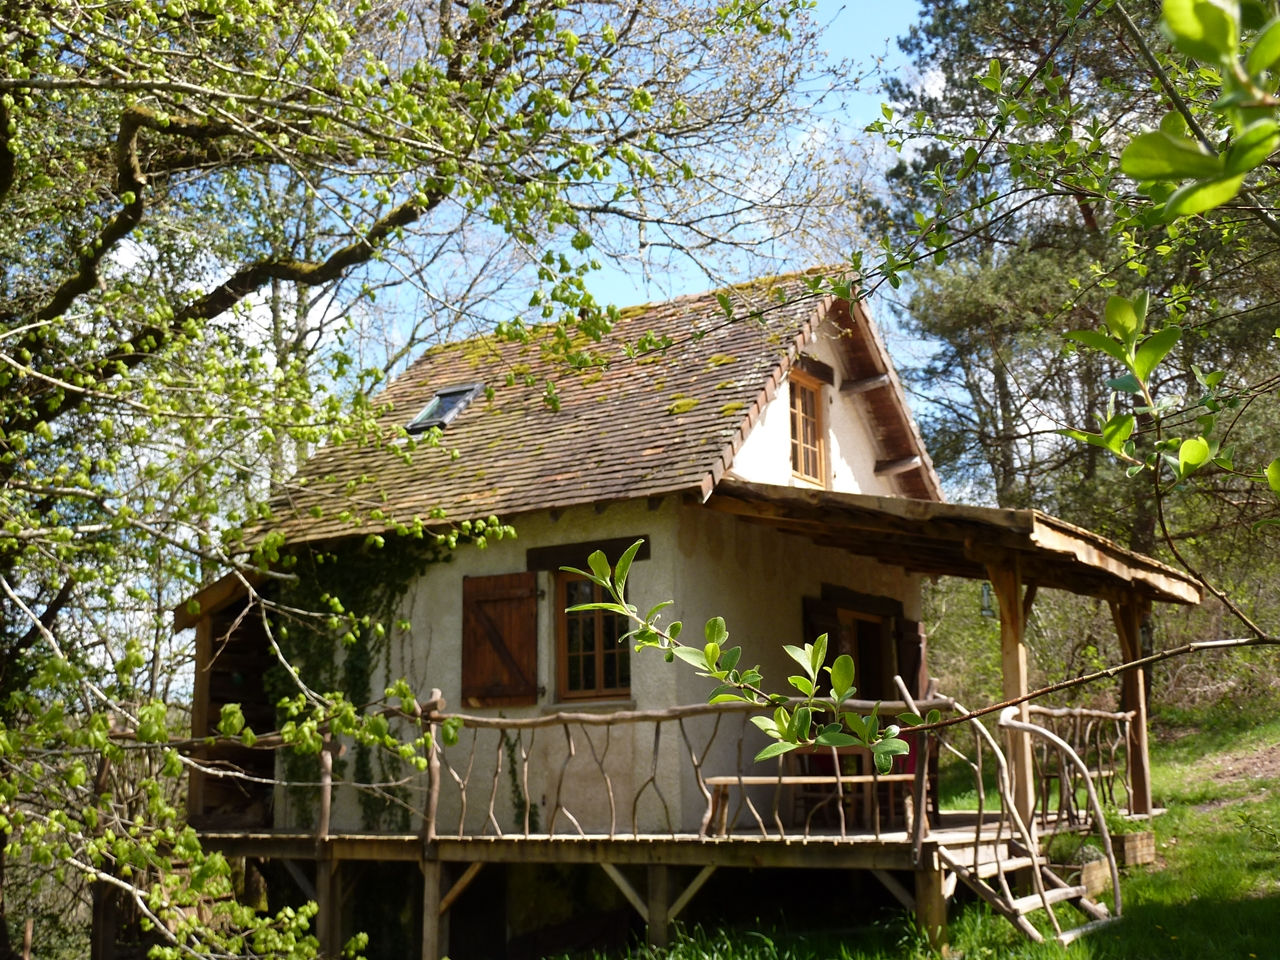 gallery poacher s cabin a secluded hideaway for two small published february 14 2015 at 1280 960 in poacher s cabin